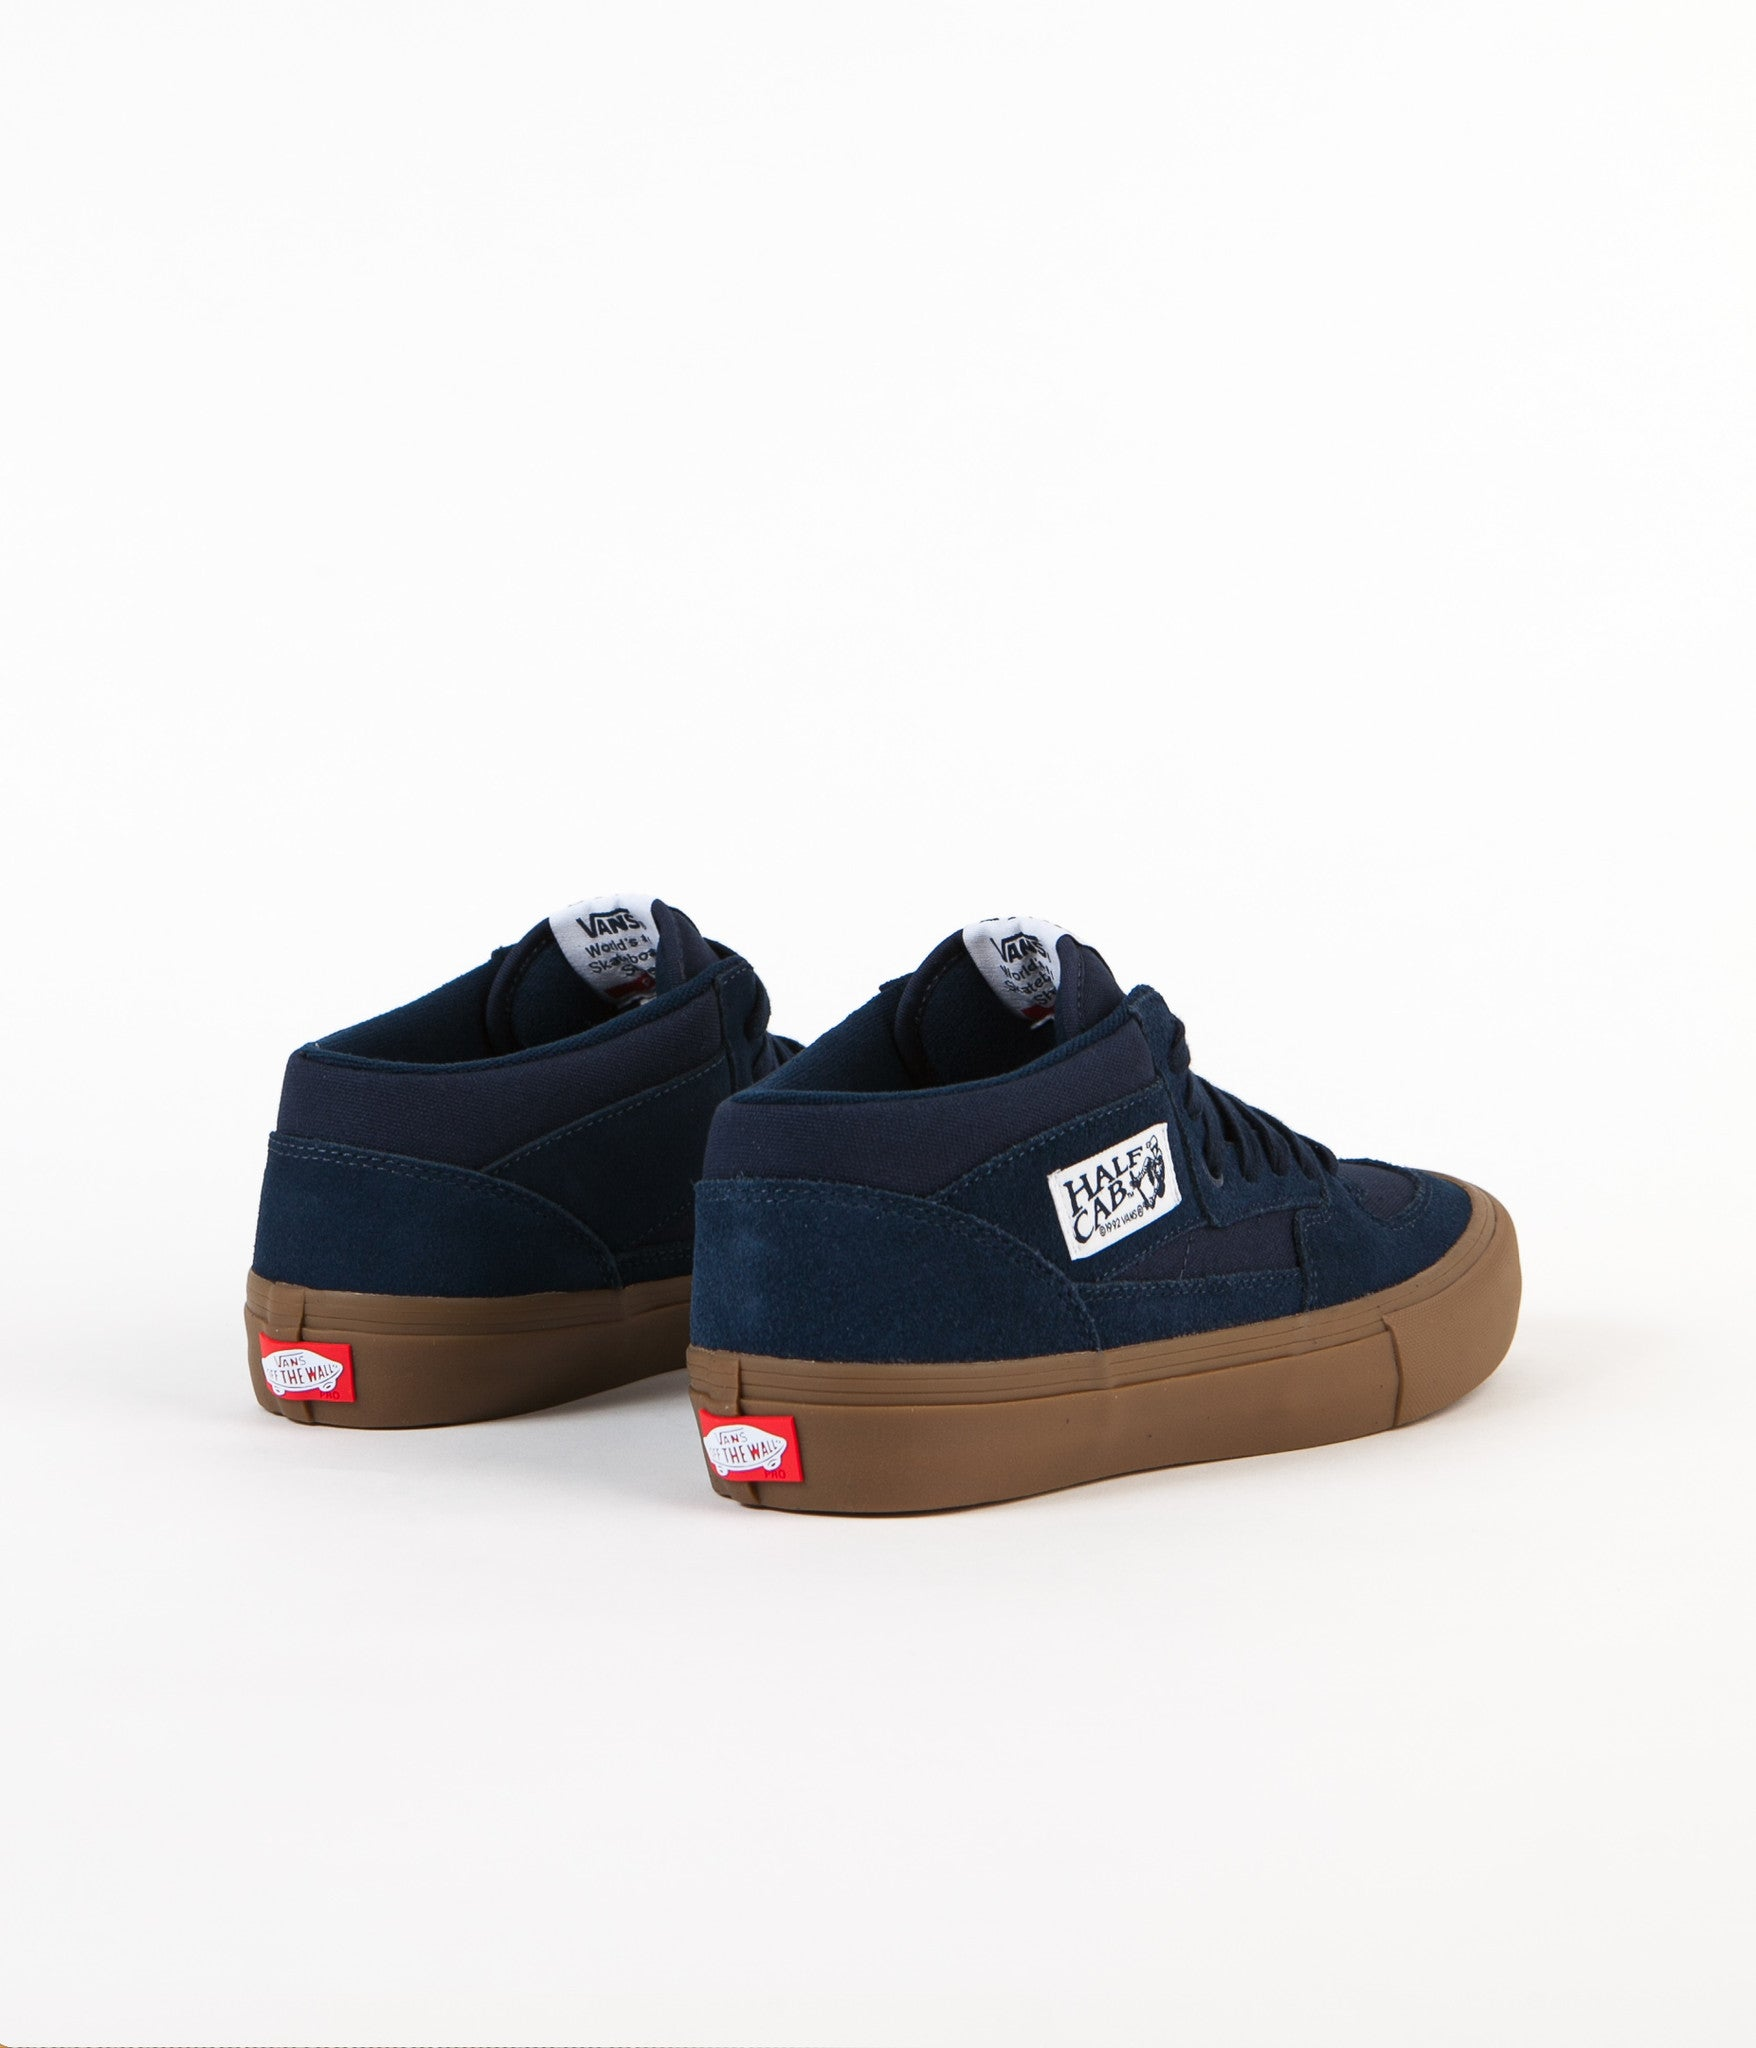 Vans Half Cab Pro Shoes - Navy / Gum